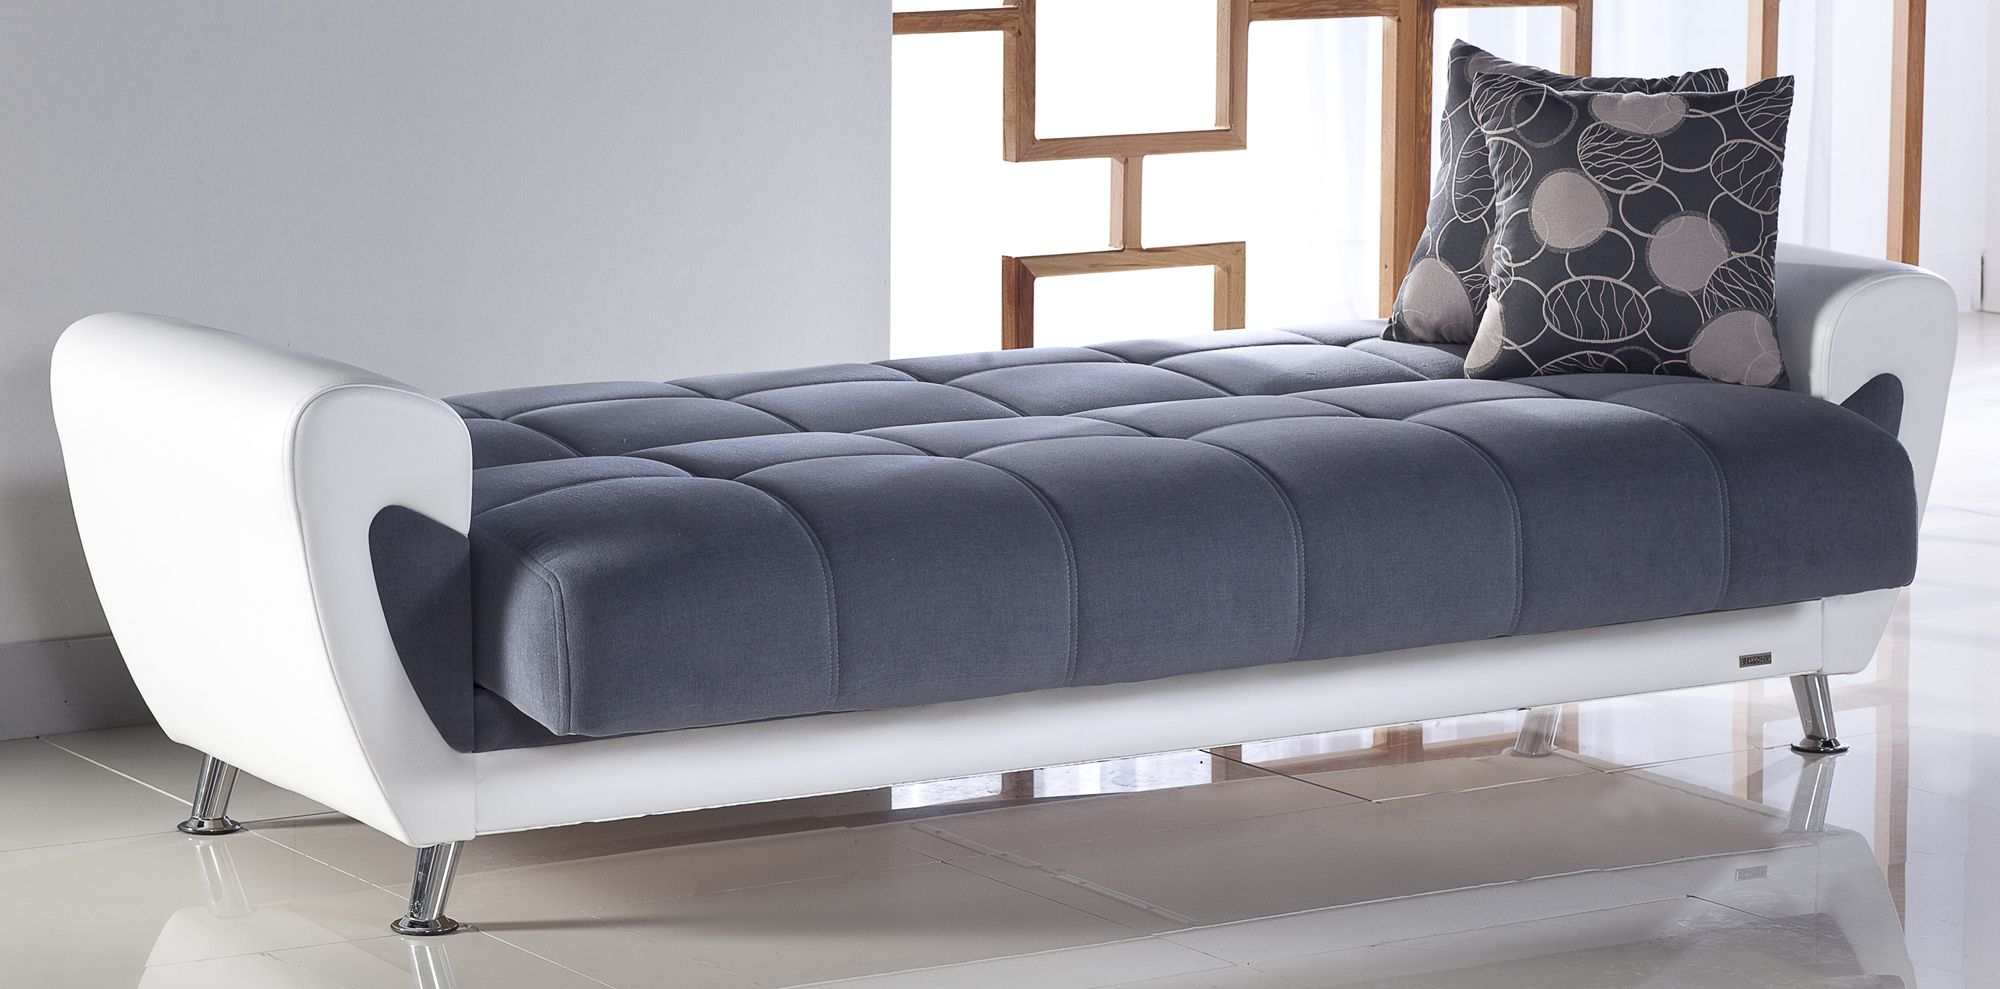 Duru Cozy Gray Sofa Bed by Sunset